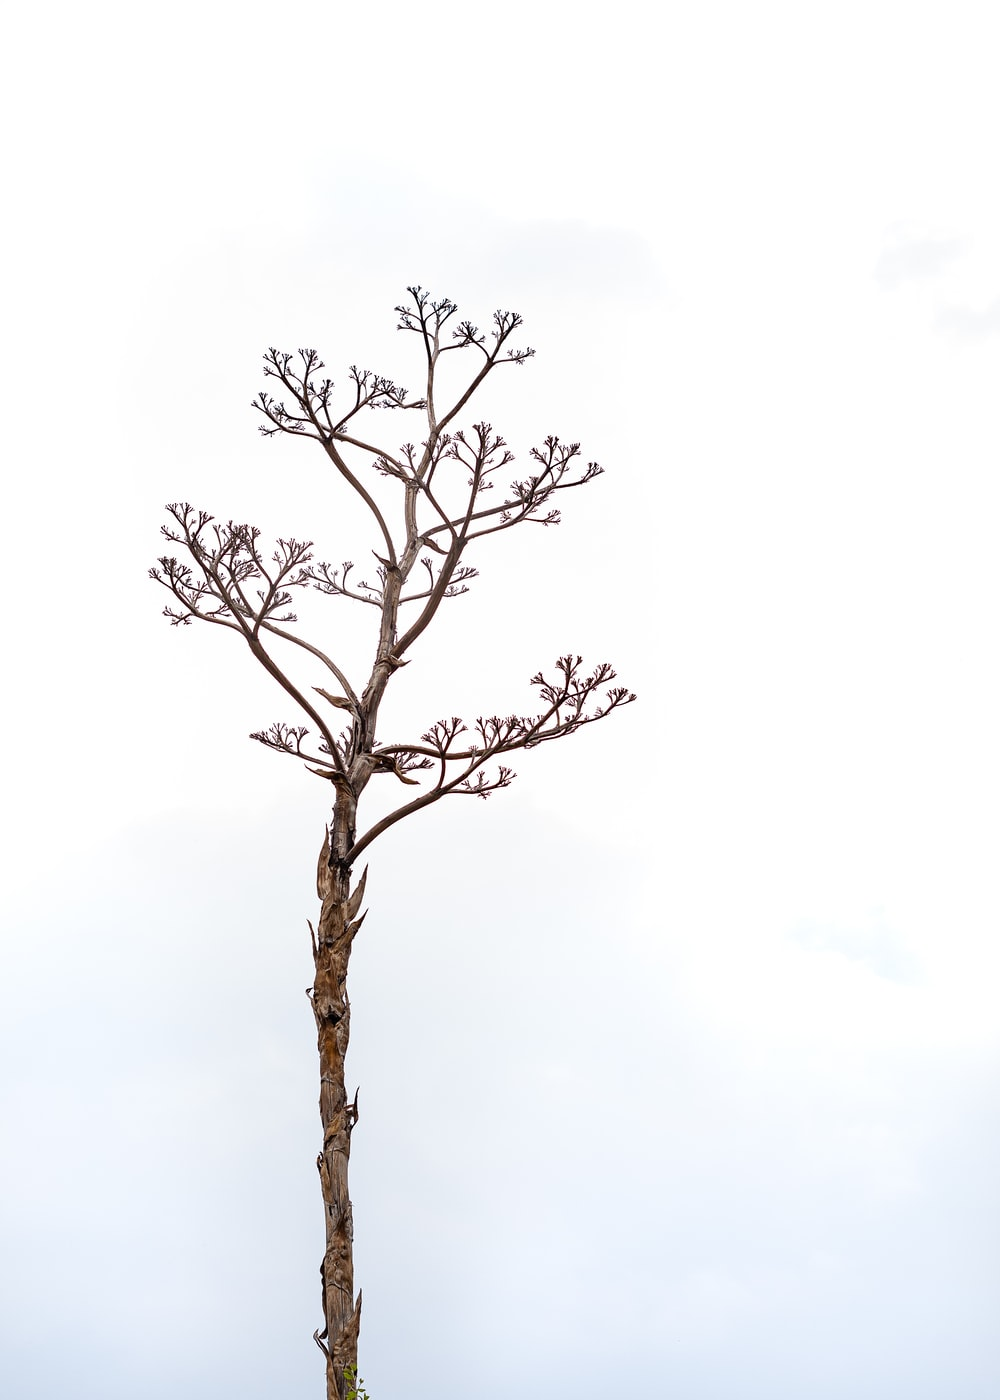 brown leafless tree under white sky